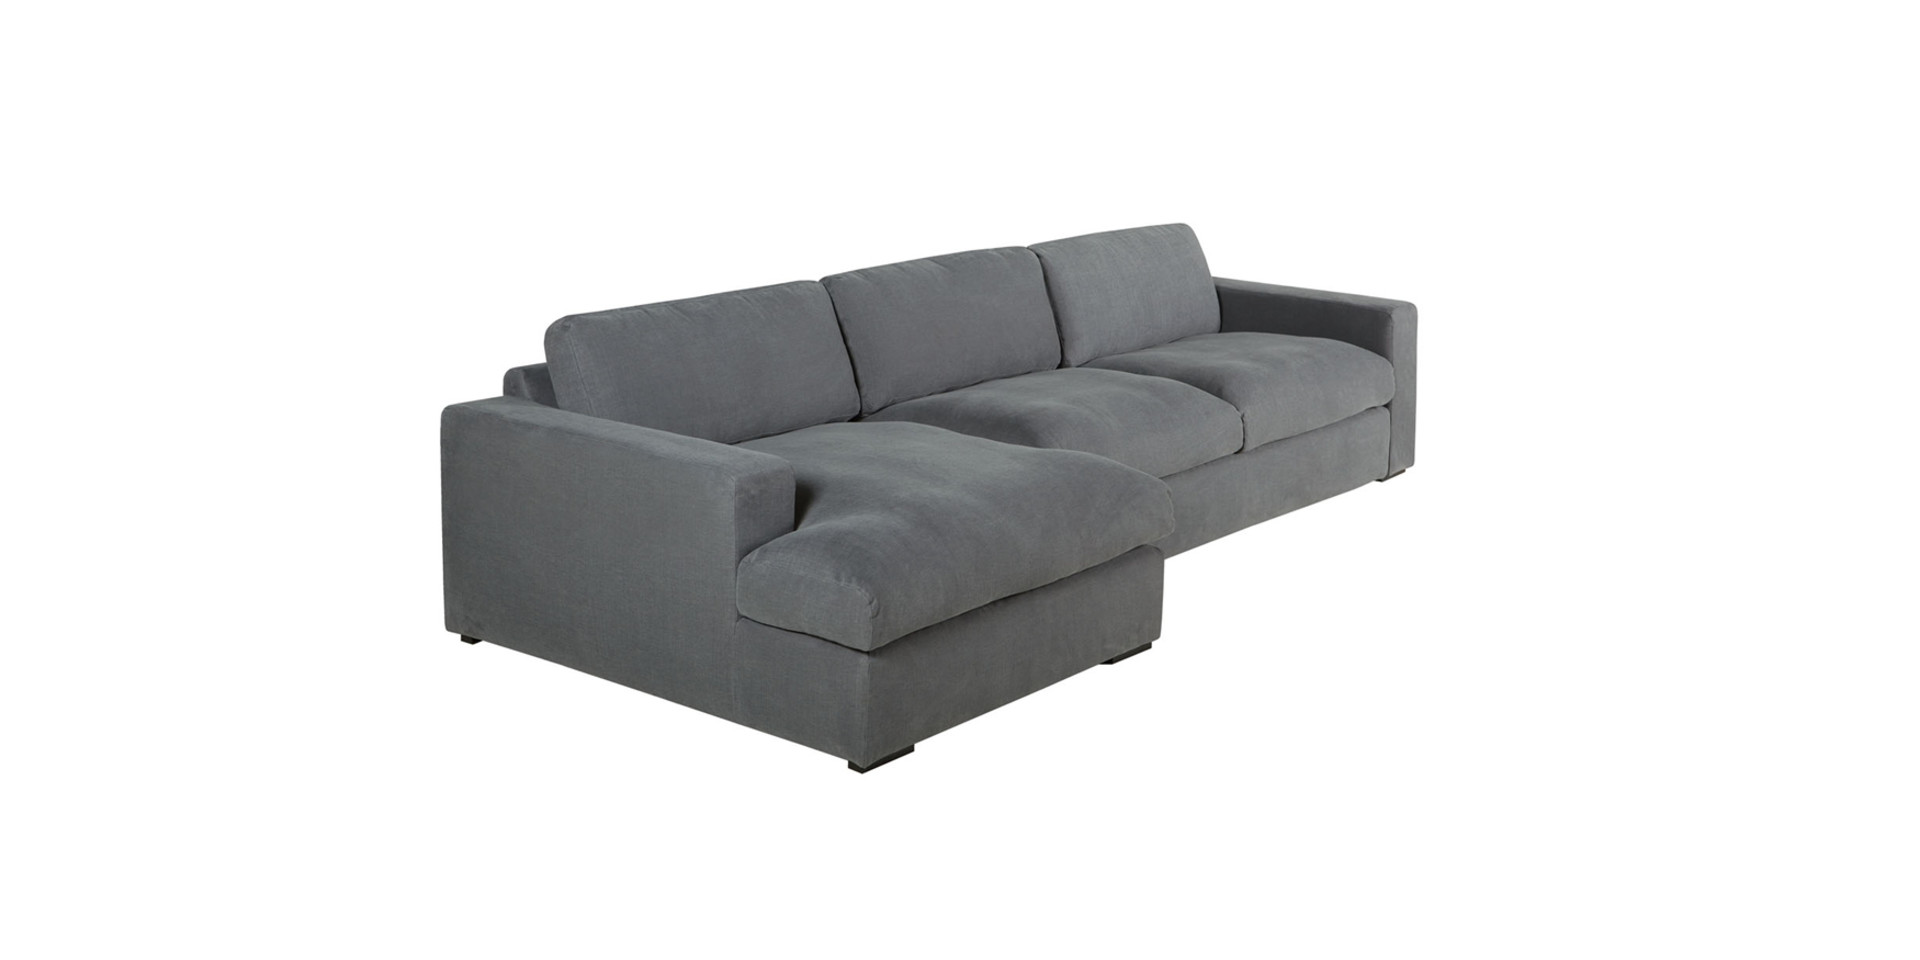 sits-linda-angle-3seaterright_chaiselongue93left_caleido10997_grey_5